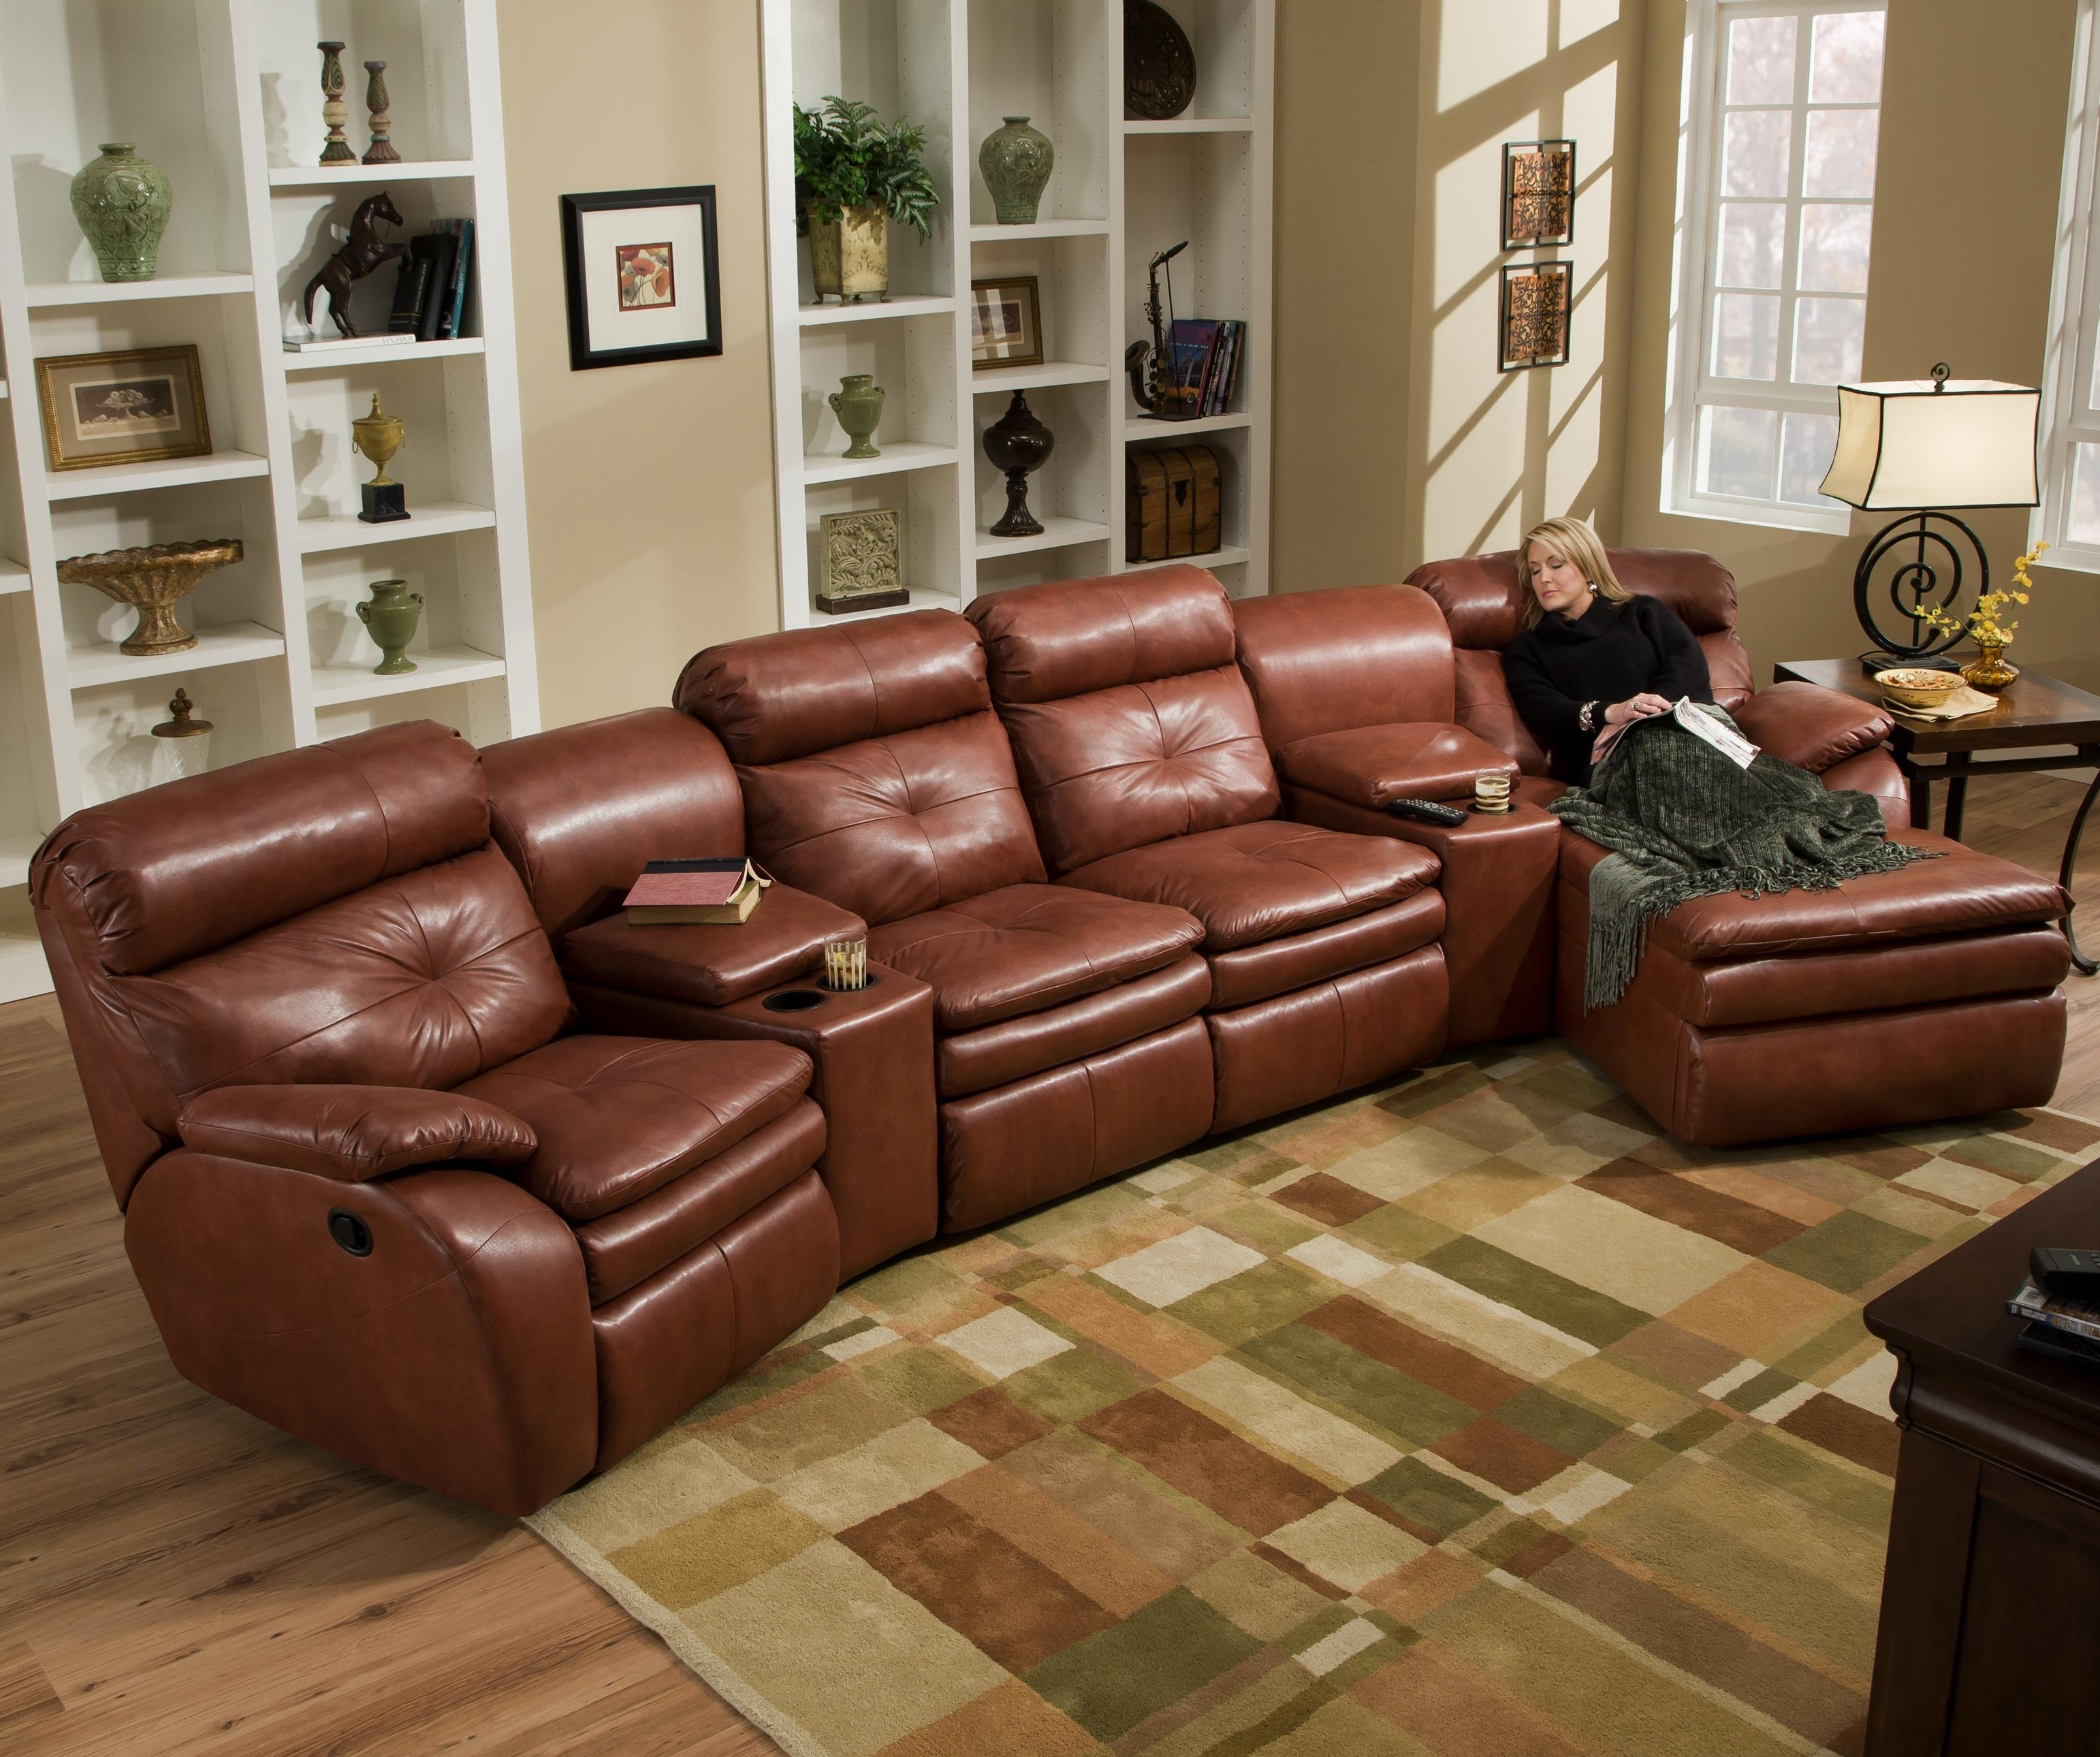 Well Liked Sectional Sofas For Small Spaces With Recliners Intended For Sectional Couch Ikea Big Lots Recliners Reclining Sectional With (View 5 of 15)